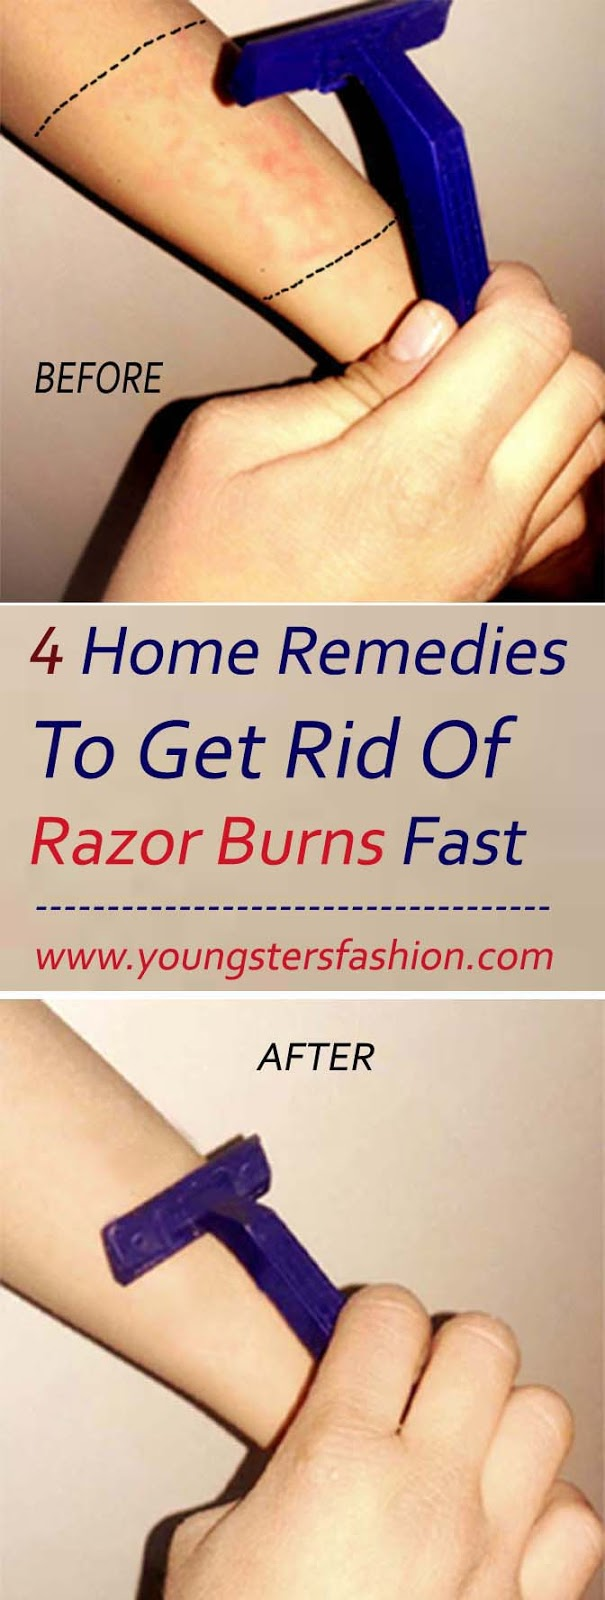 4 Home Remedies To Get Rid Of Razor Burns Fast